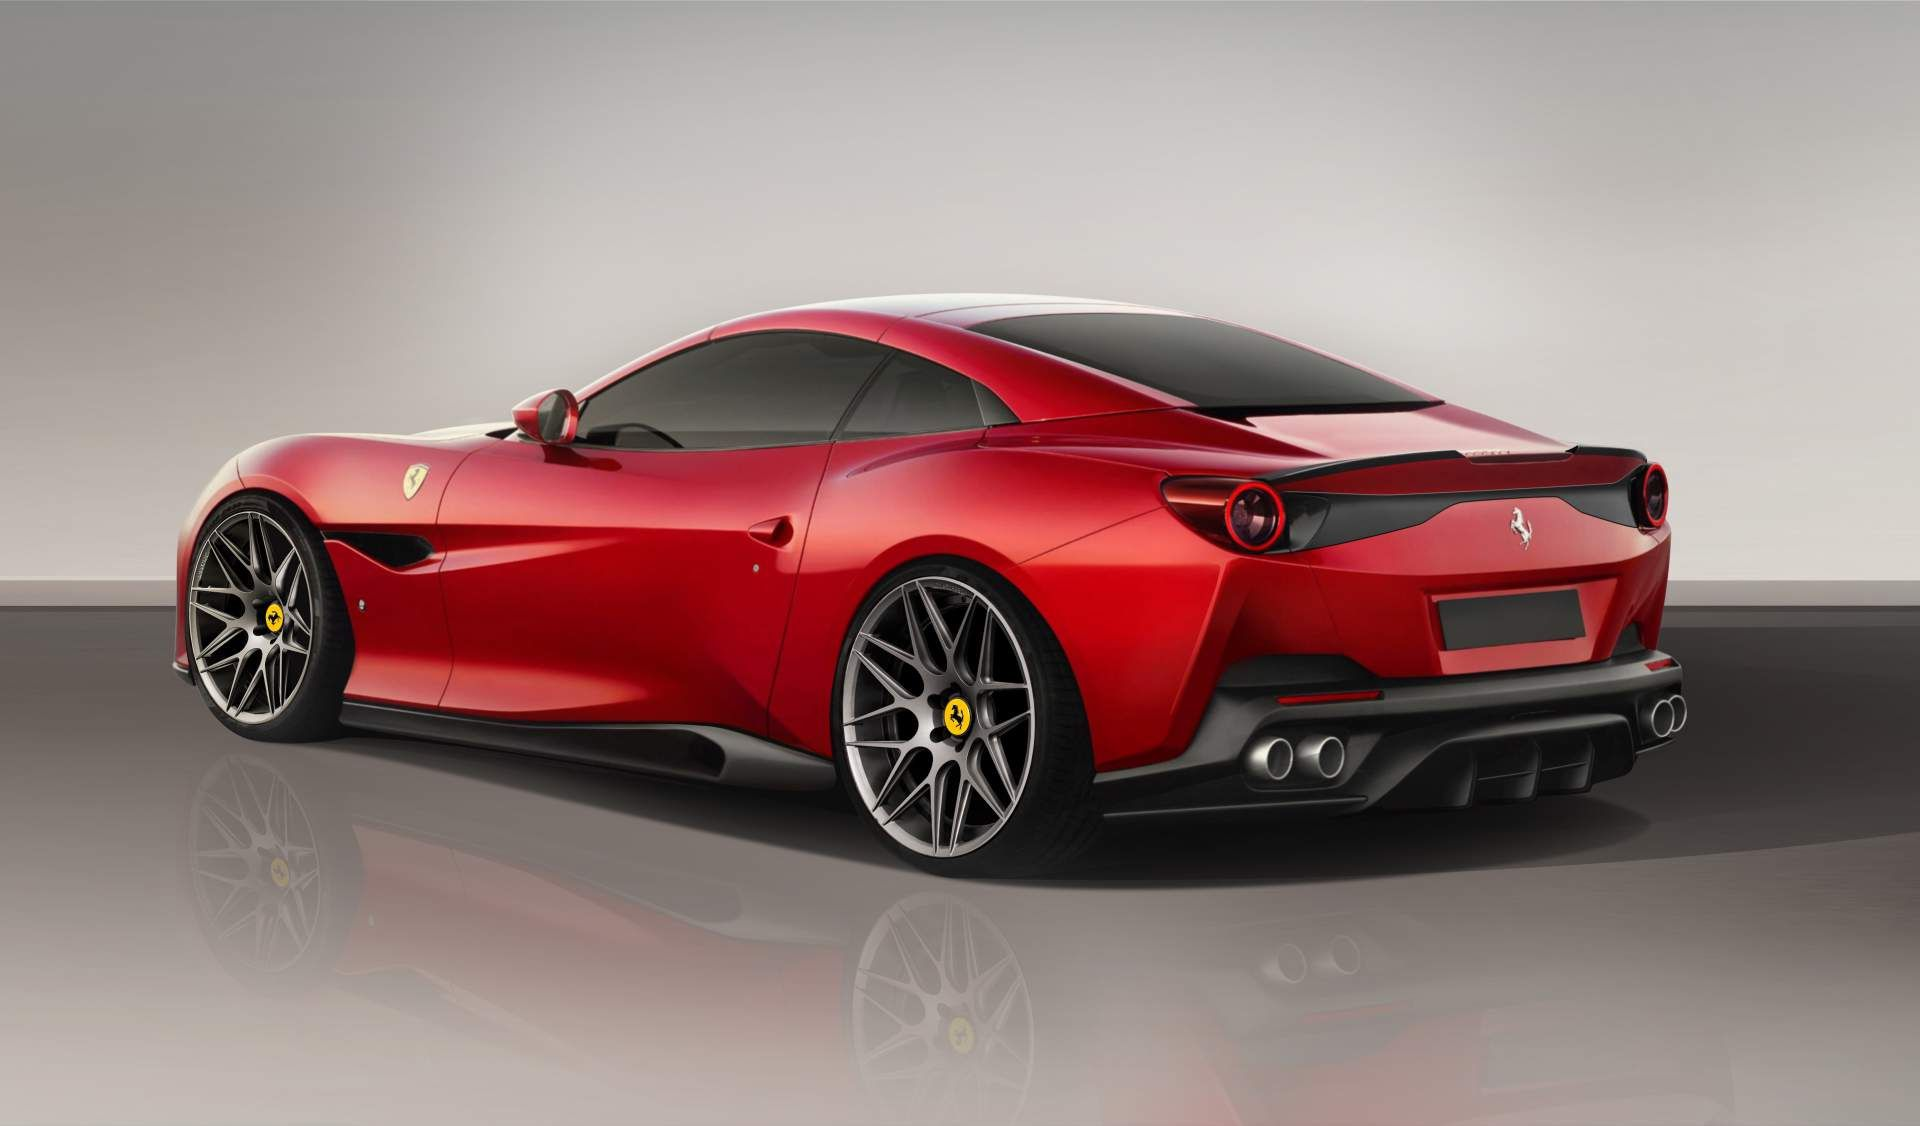 Loma Gives Ferrari Portofino A 2 0 Styling And Performance Upgrade Carscoops Super Cars Sports Car Brands Sports Car